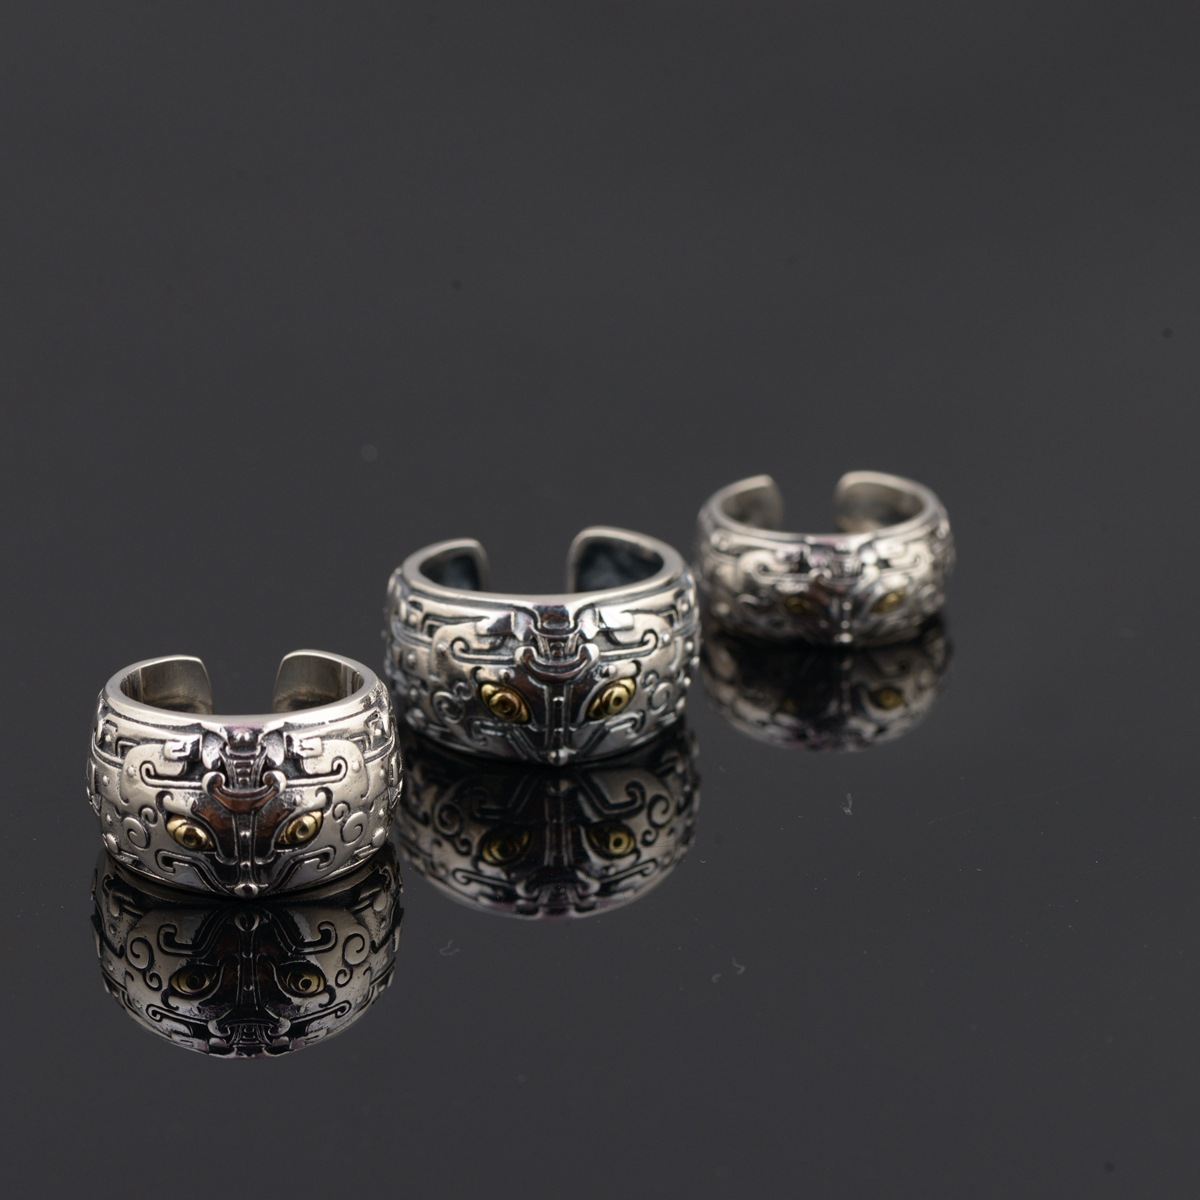 L&P 2018 Jewelry Line Thai Silver Wholesale S925 Pure Silver Antique Style Male Personality Atmosphere Opening Ring s925 pure silver personality female models new beeswax